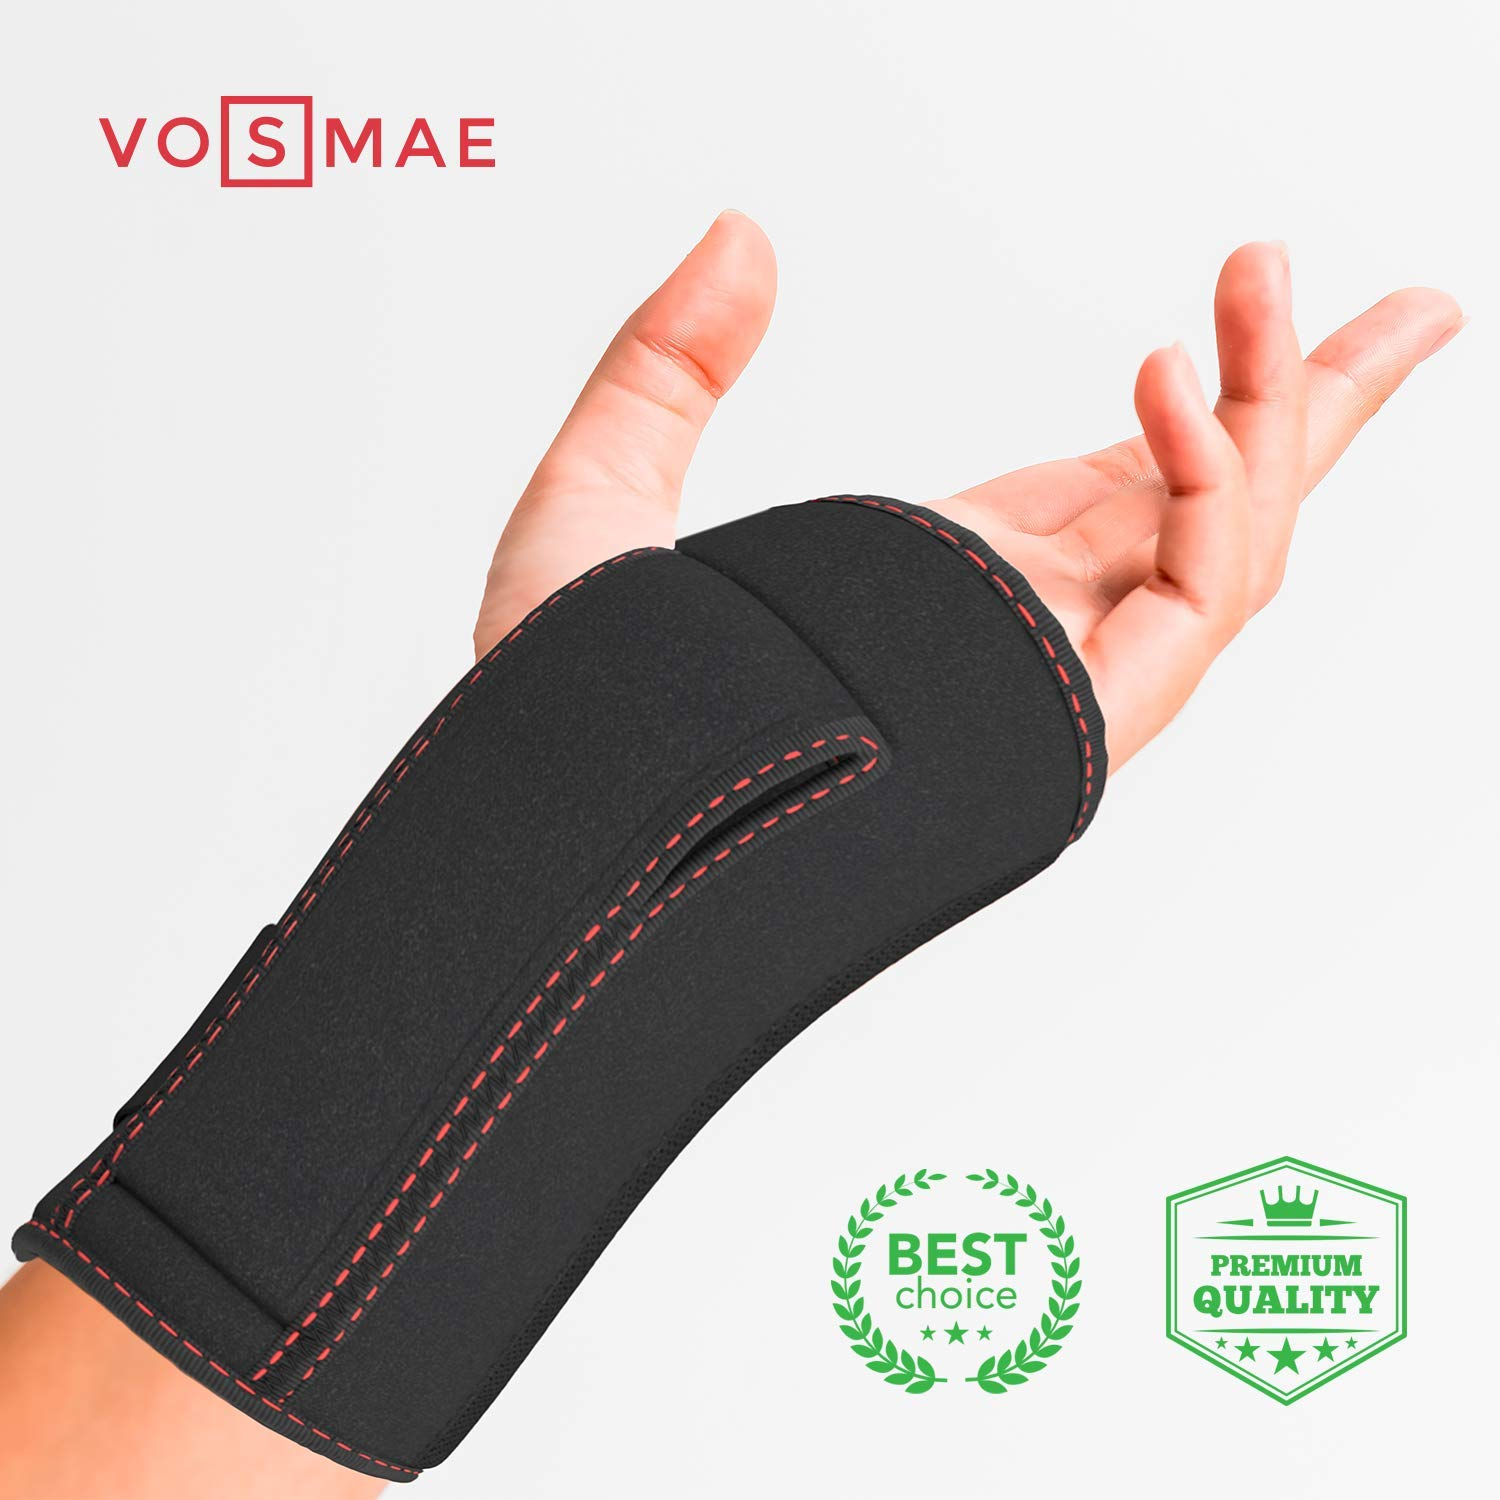 Night Wrist Sleep Support Brace - Fit for Left or Right Hand - Adjustable Wrist Support Brace with Splint & Gel Cushioned Pads - Carpal Tunnel Tendinitis Arthritis Wrist Pain Relief for Women and Men